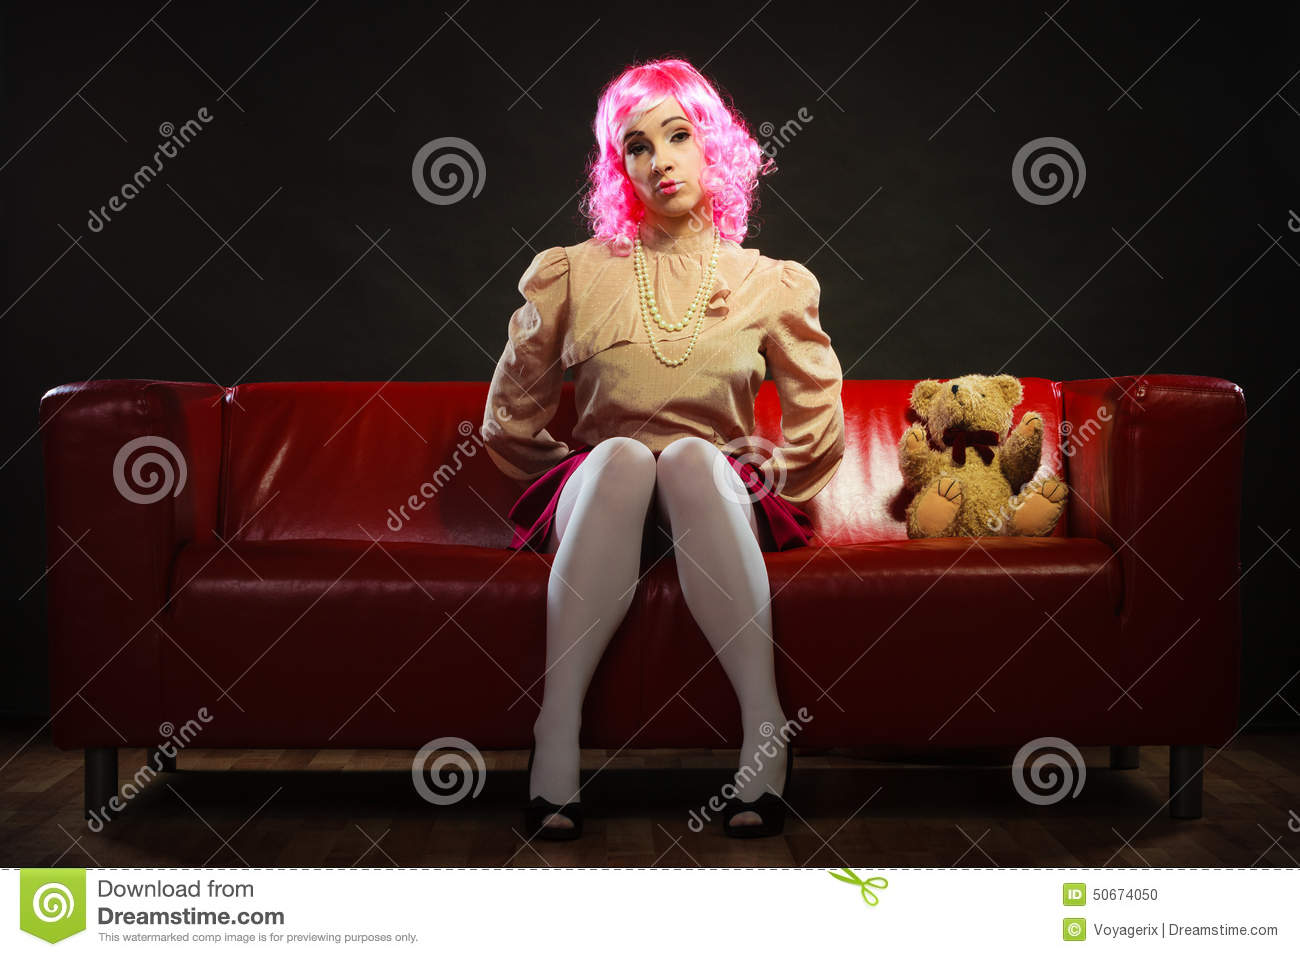 Peachy Childlike Woman And Teddy Bear Sitting On Couch Stock Photo Machost Co Dining Chair Design Ideas Machostcouk